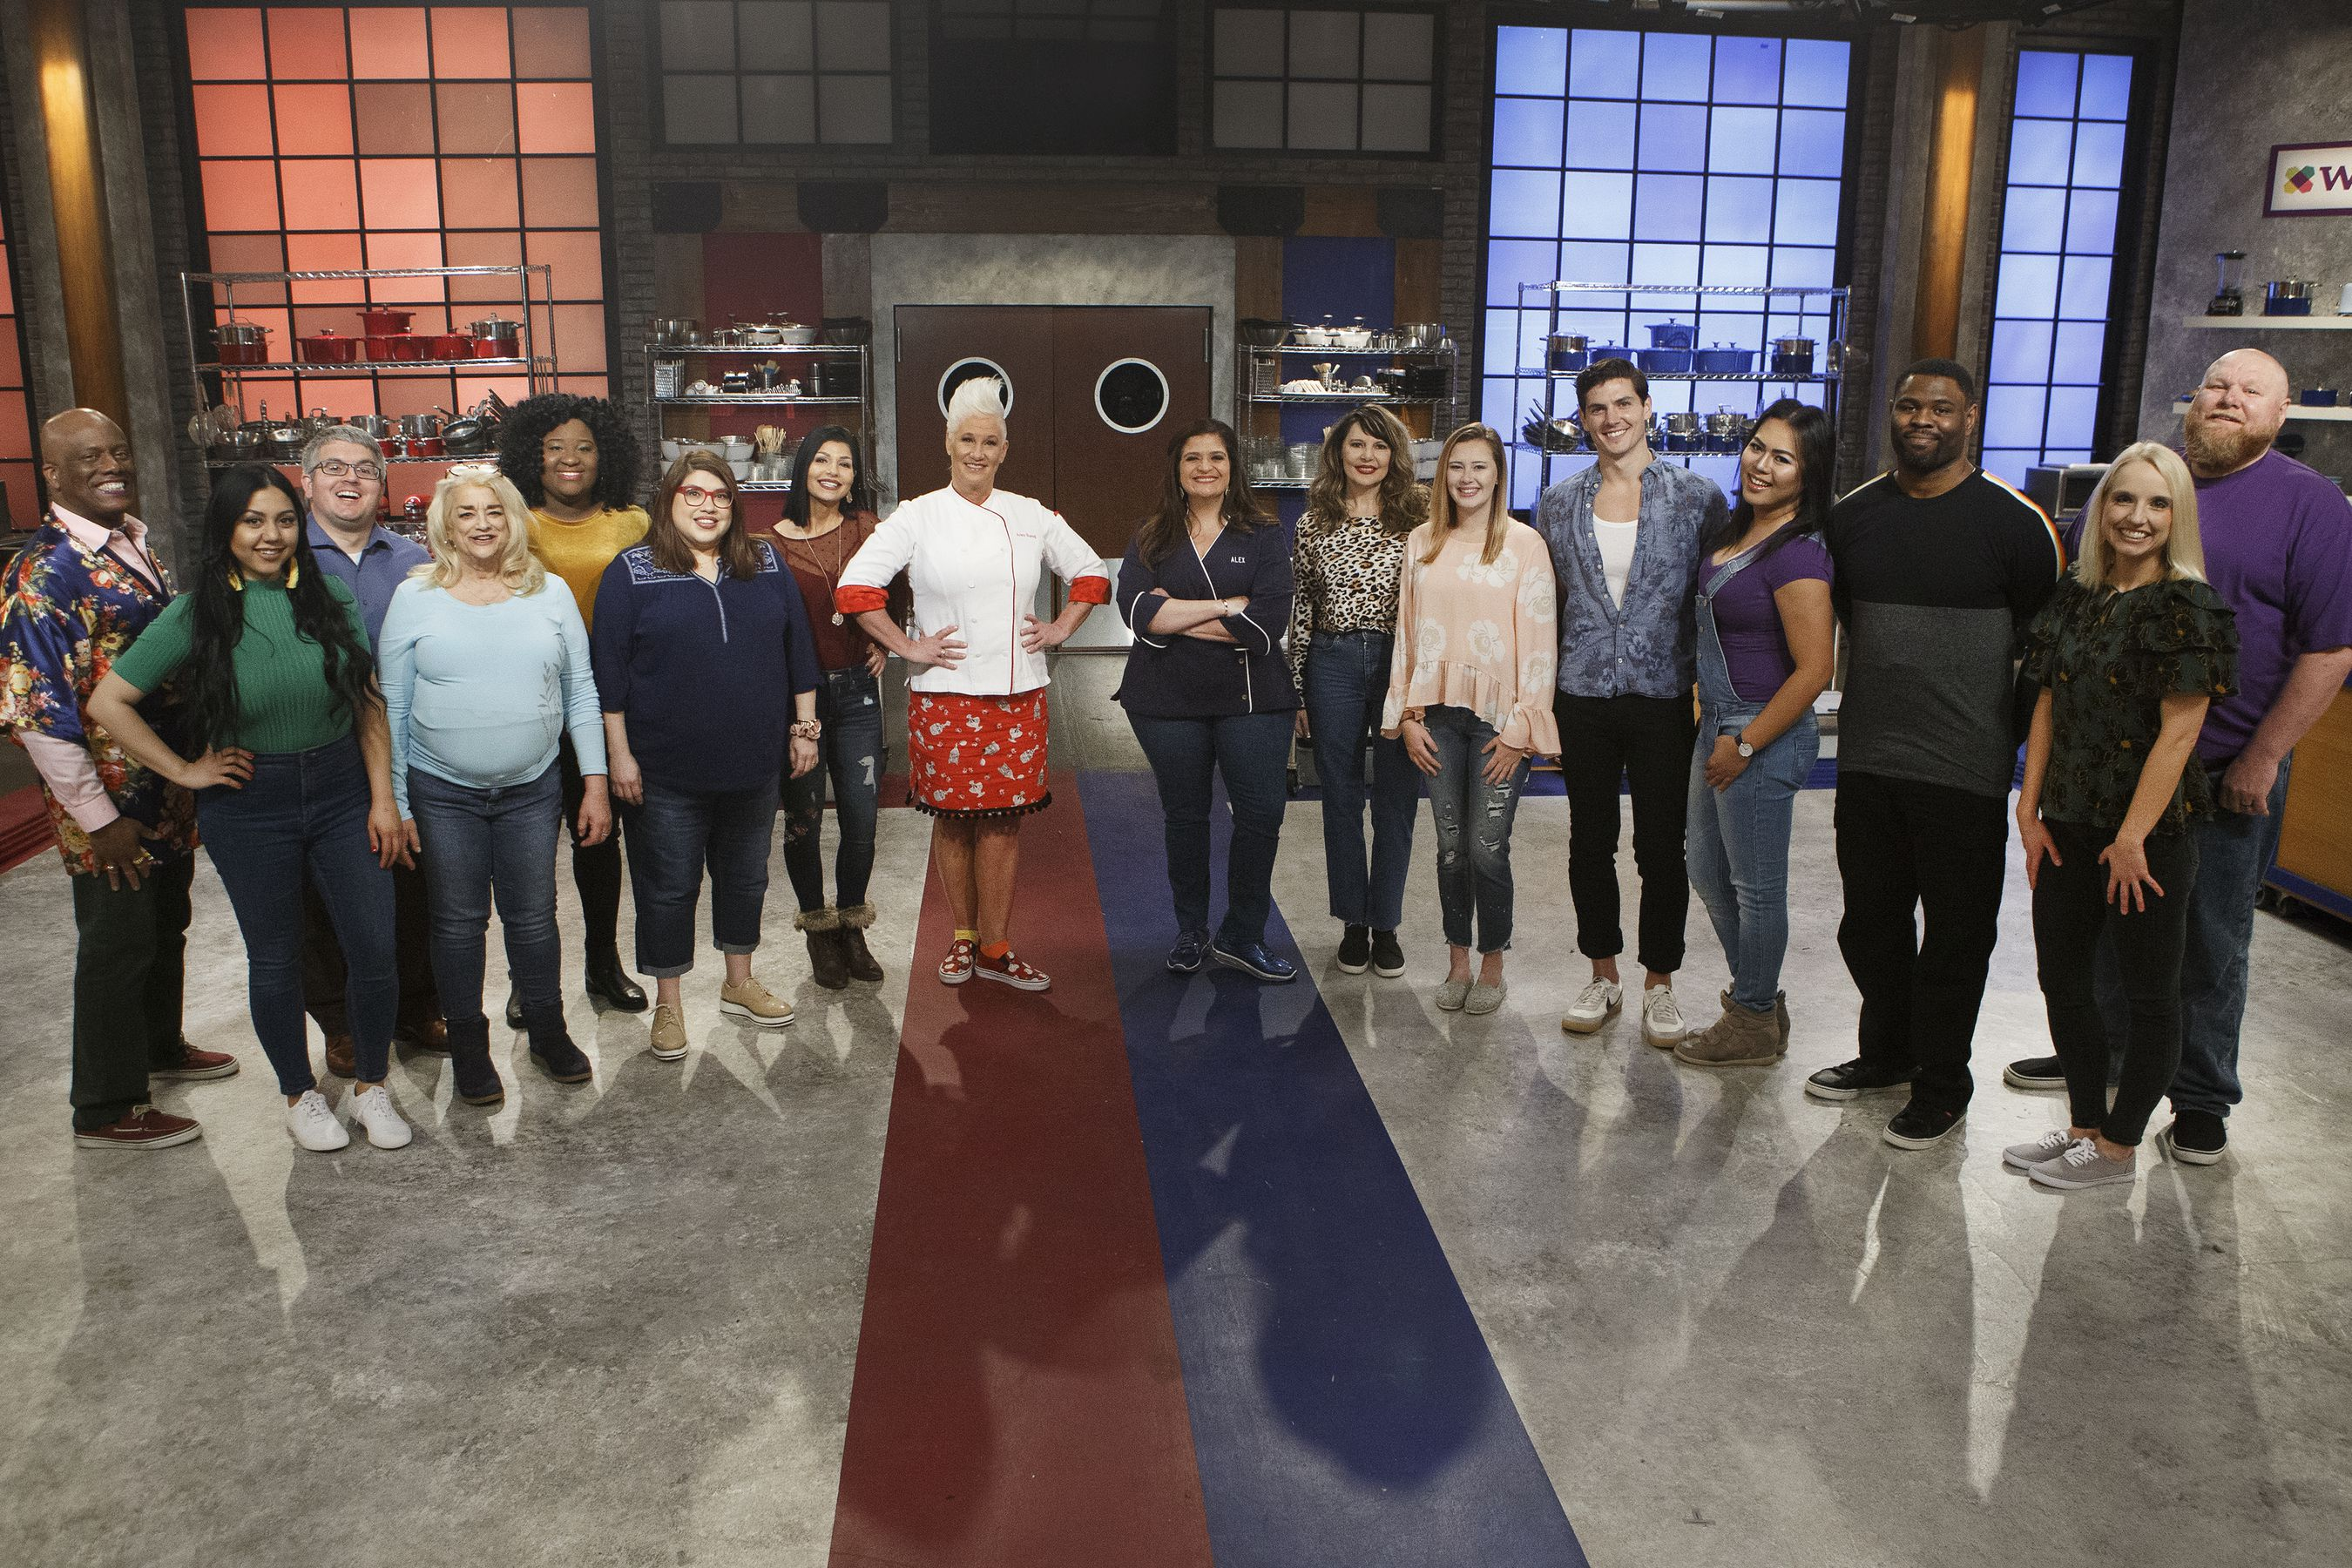 Cny Woman To Appear On Worst Cooks In America With Anne Burrell Syracuse Com